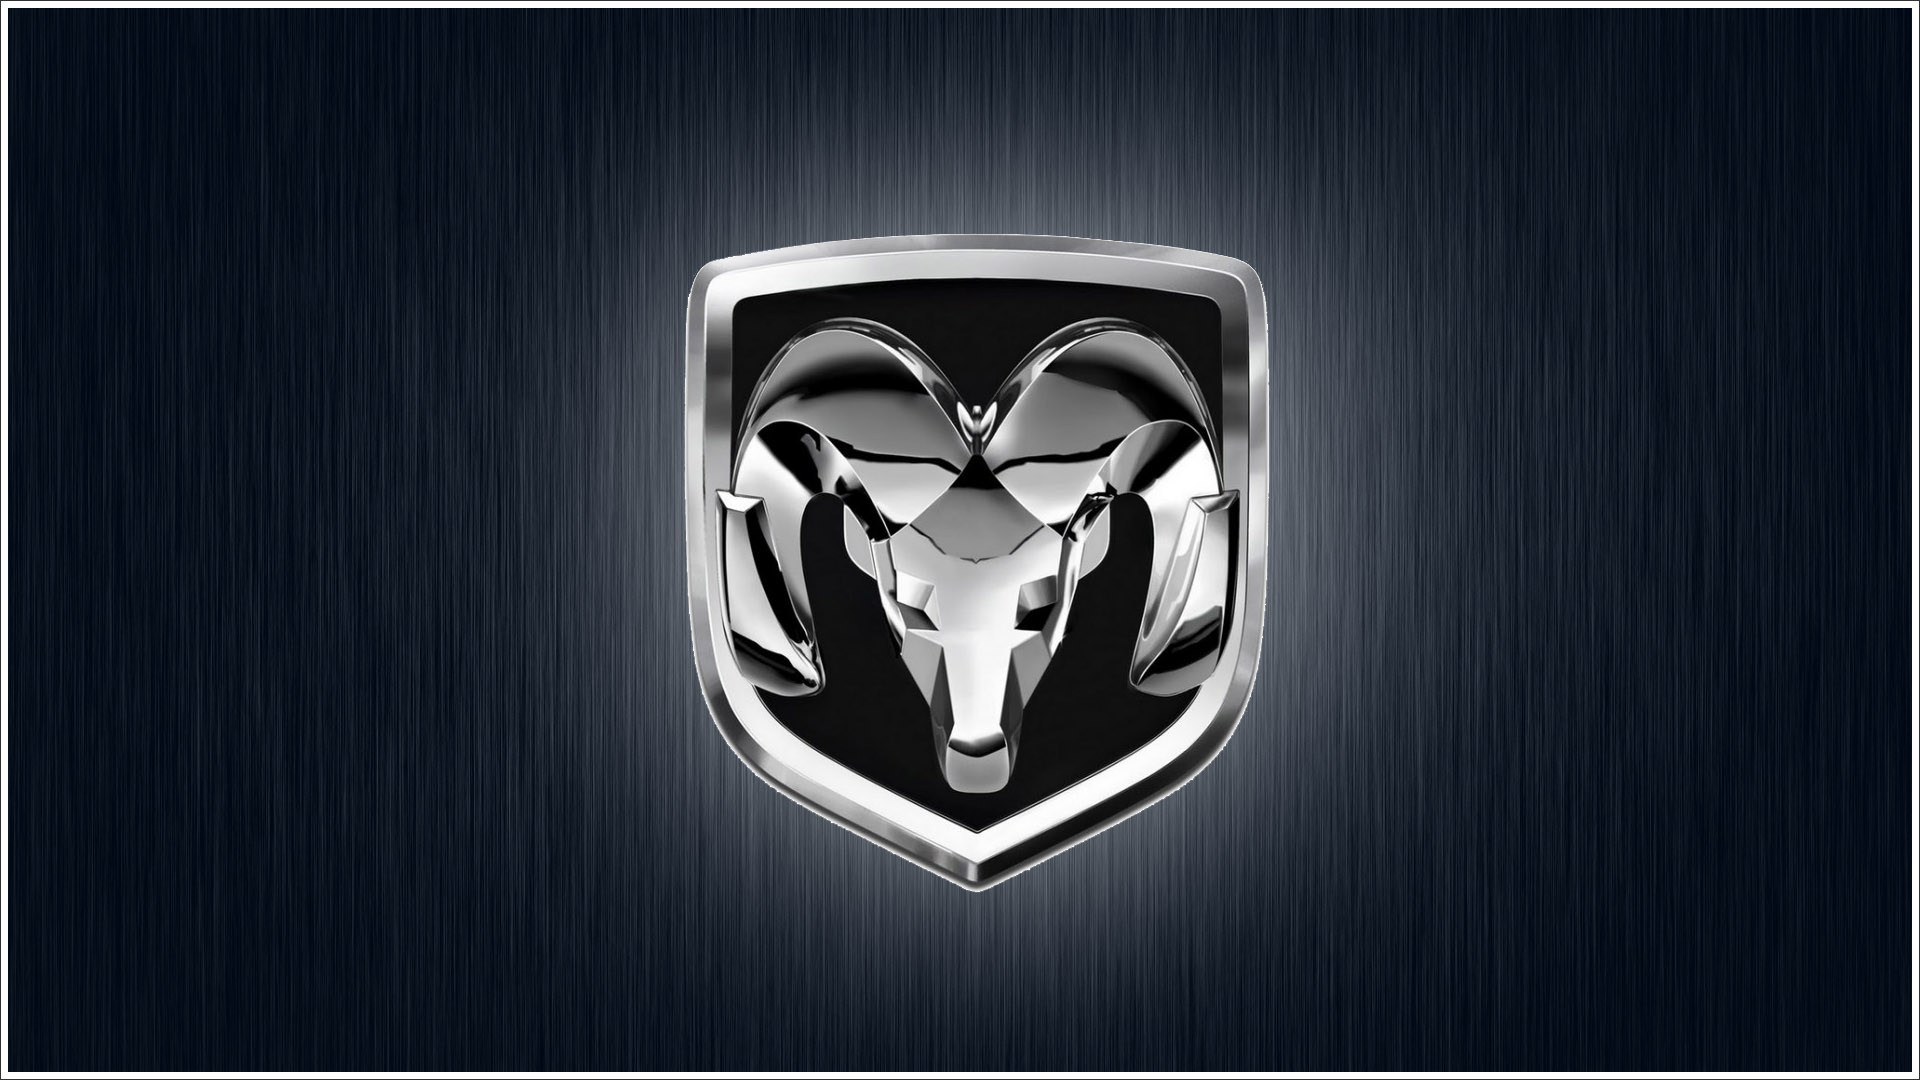 dodge logo meaning and history latest models world cars